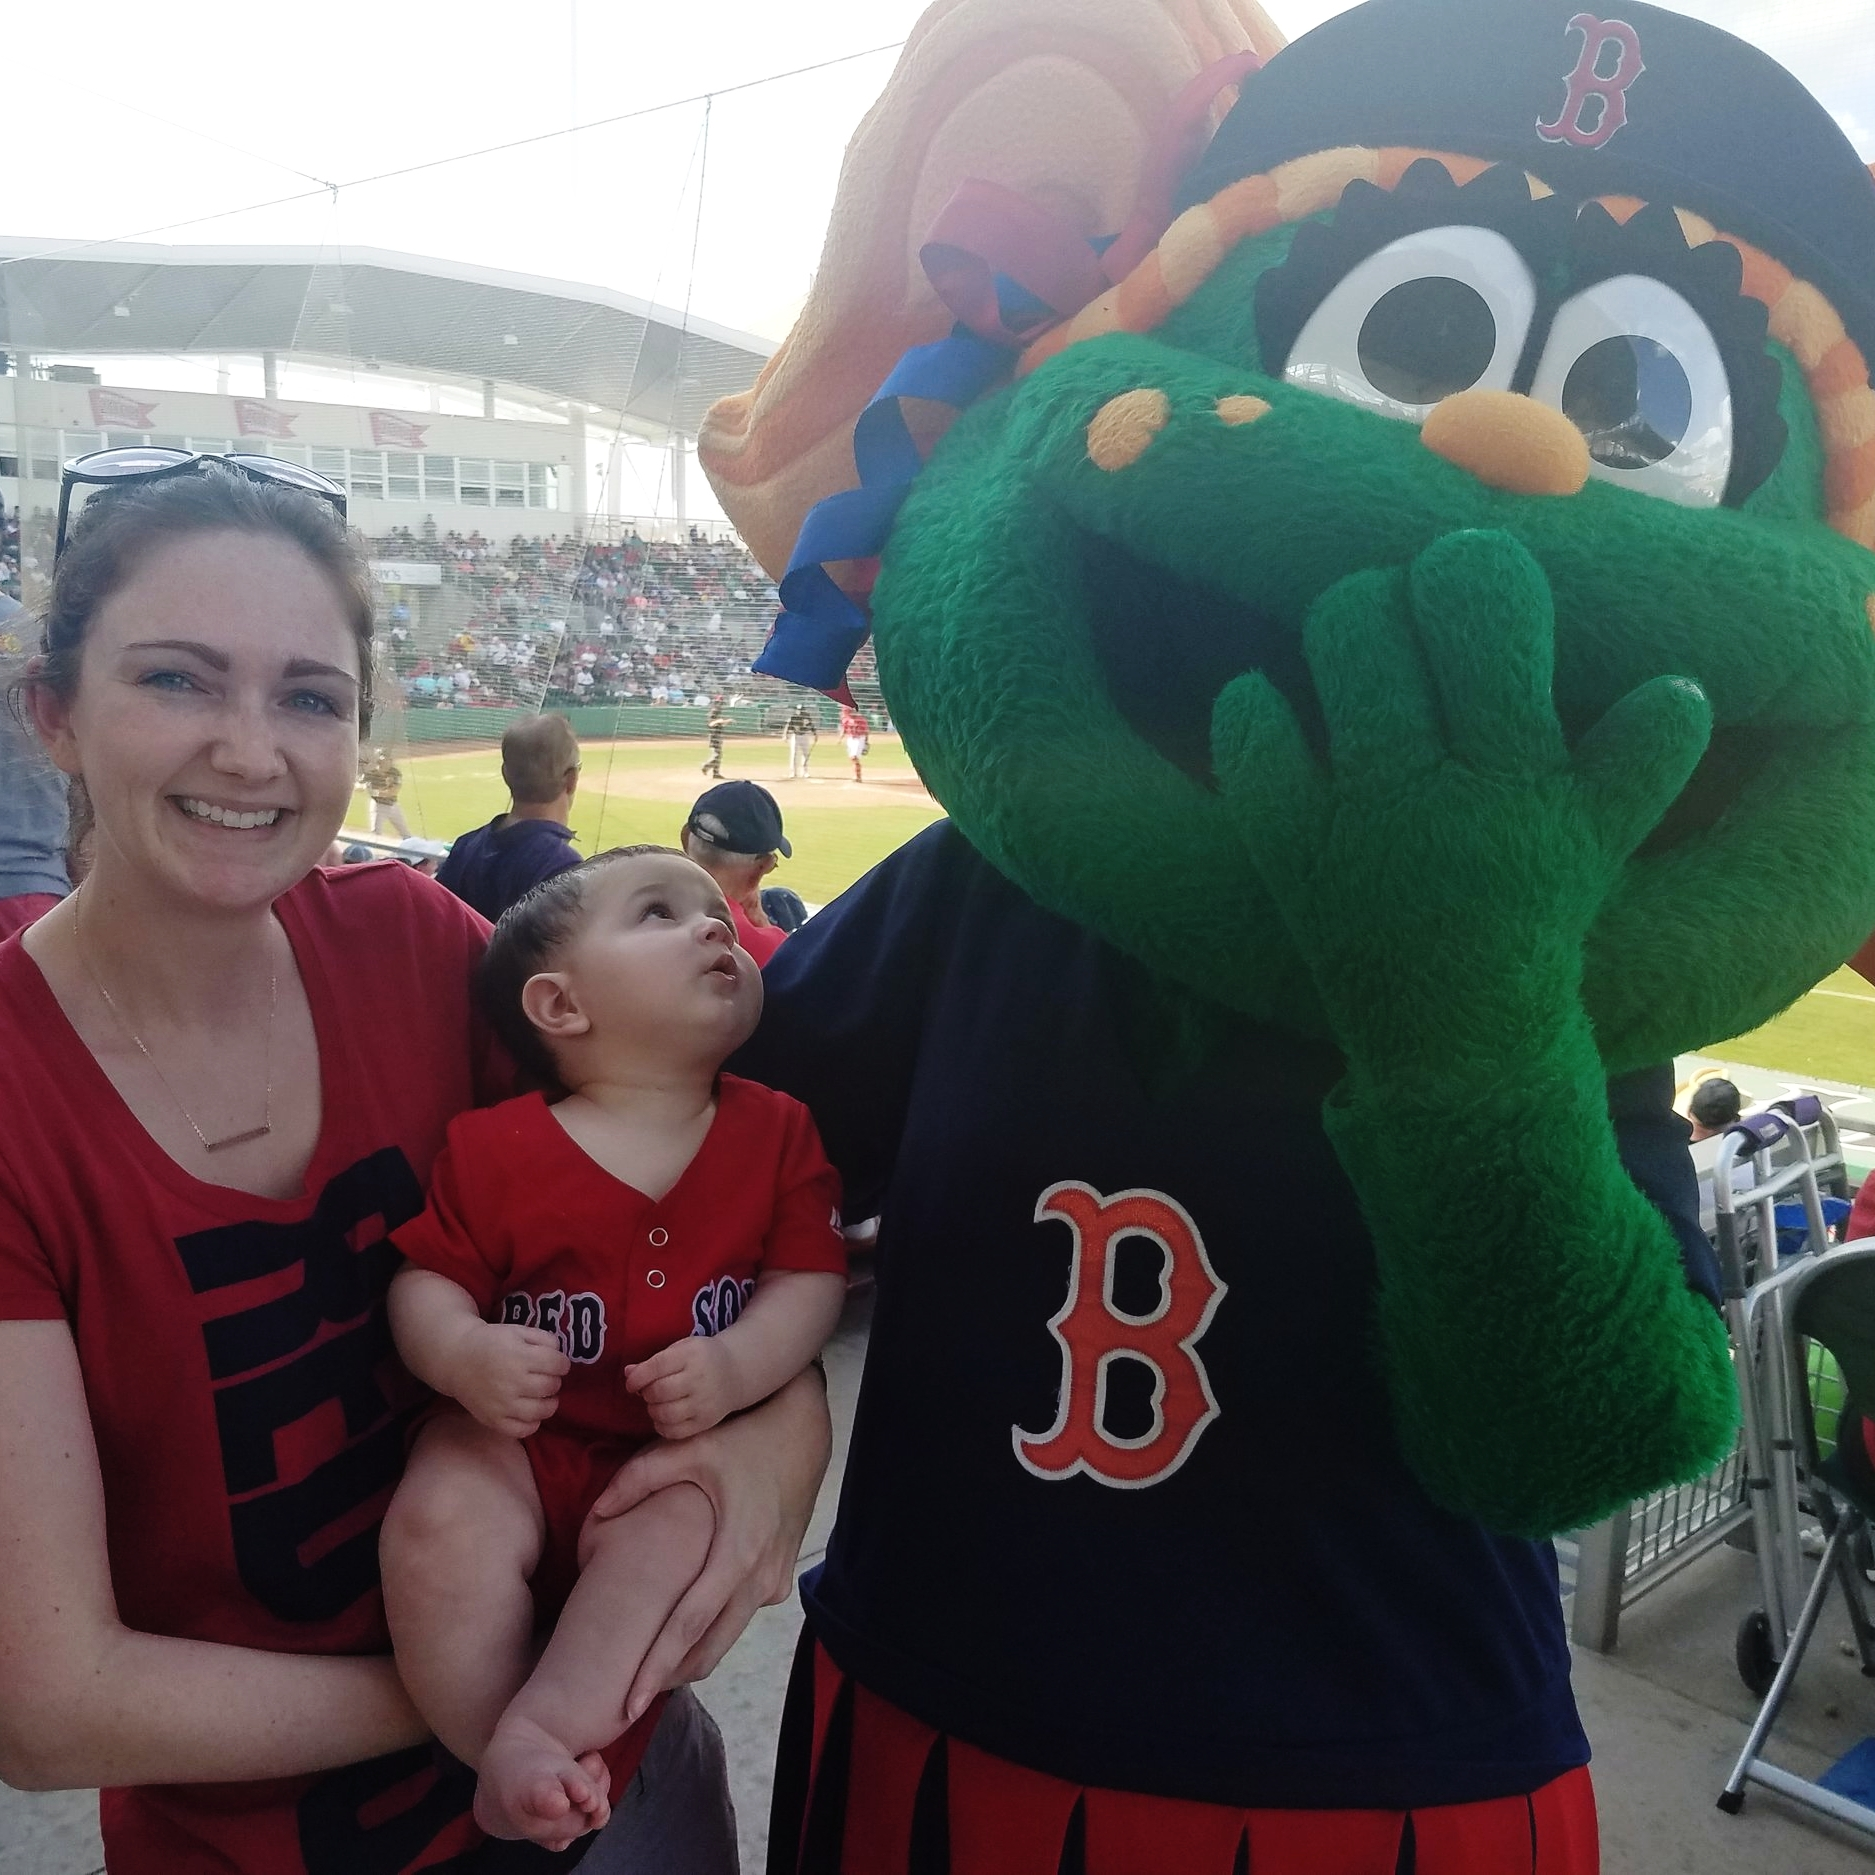 Baby at red sox game Tessie